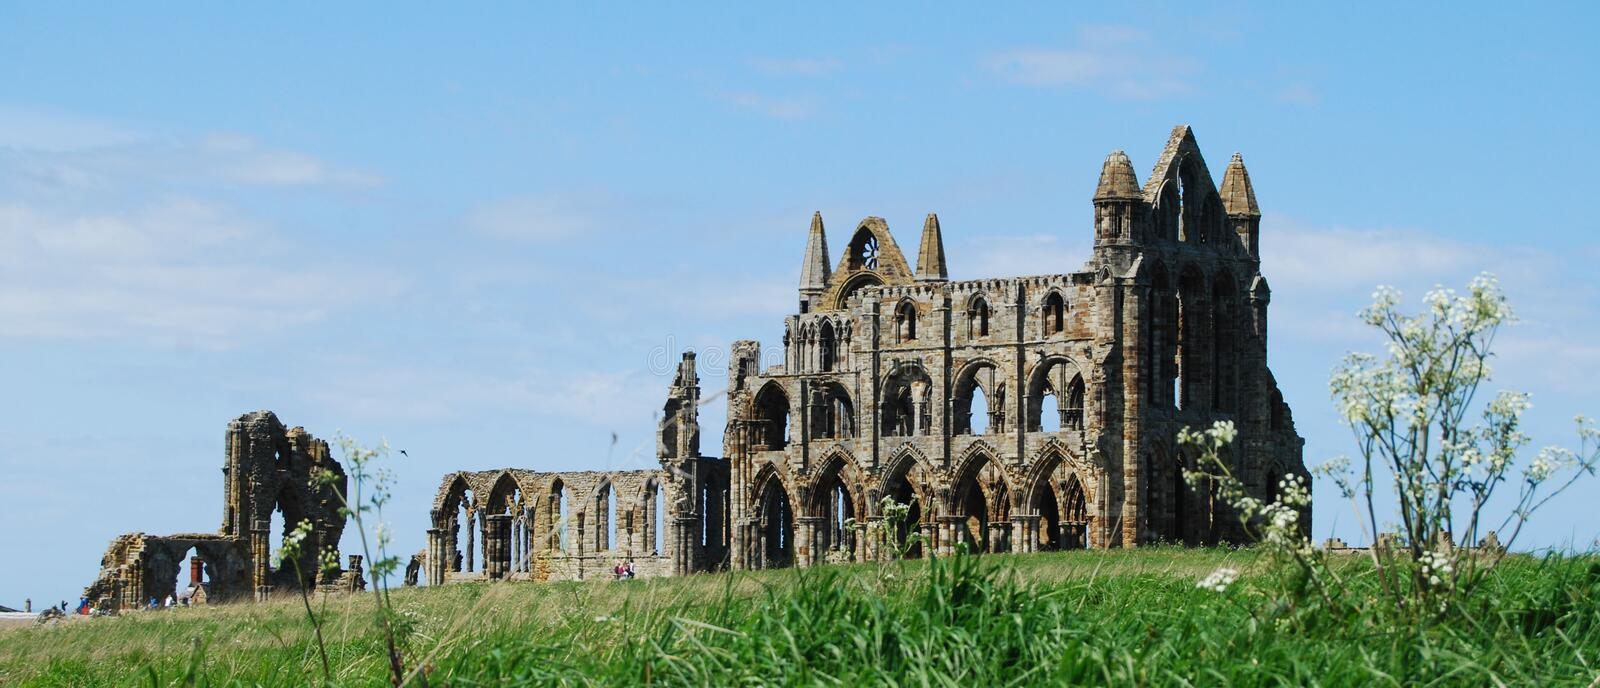 Whitby Abbey, North Yorkshire. Whitby Abbey is a ruined Benedictine abbey overlooking the North Sea on the East Cliff above Whitby in North Yorkshire, England royalty free stock images